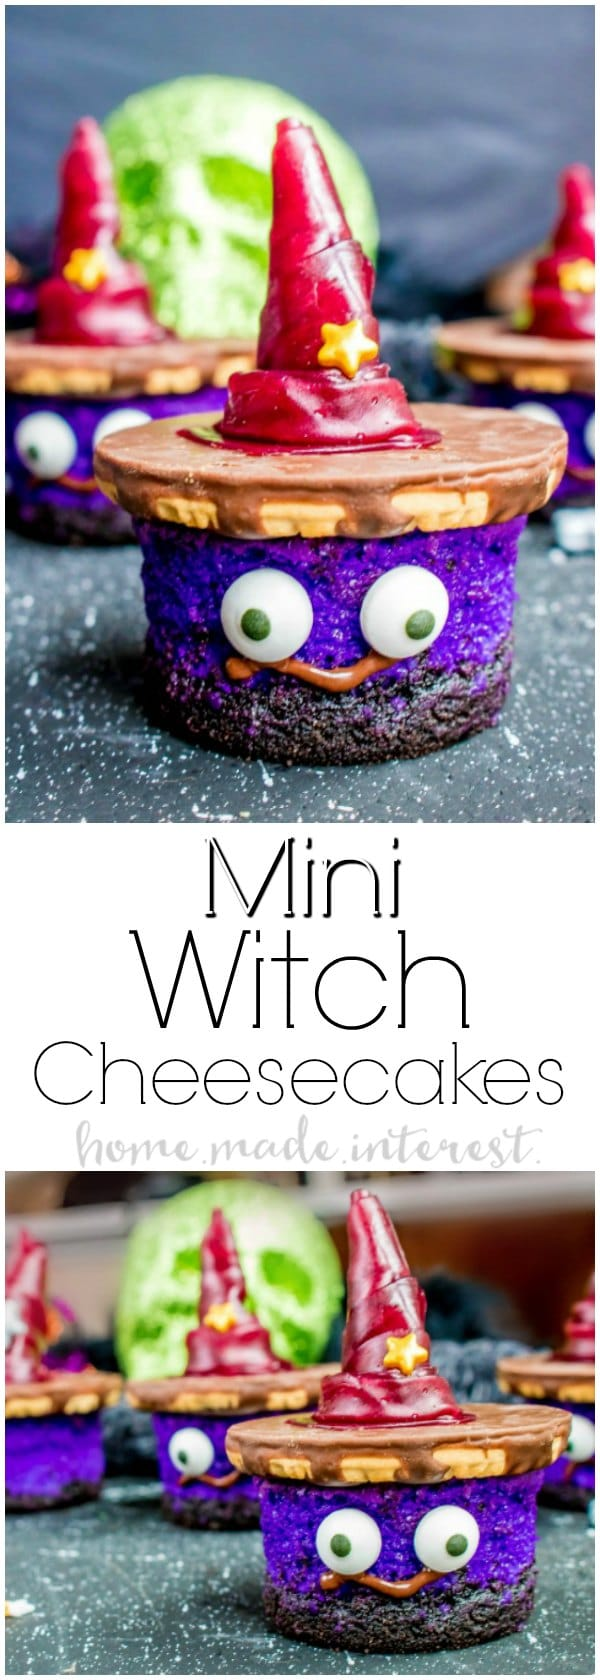 Mini Witch Cheesecakes | These adorable Mini Witch Cheesecakes take a simple cheesecake recipe and turn it into a fun Halloween dessert recipe that is perfect for Halloween parties! Make this halloween dessert for a kids Halloween party this year.